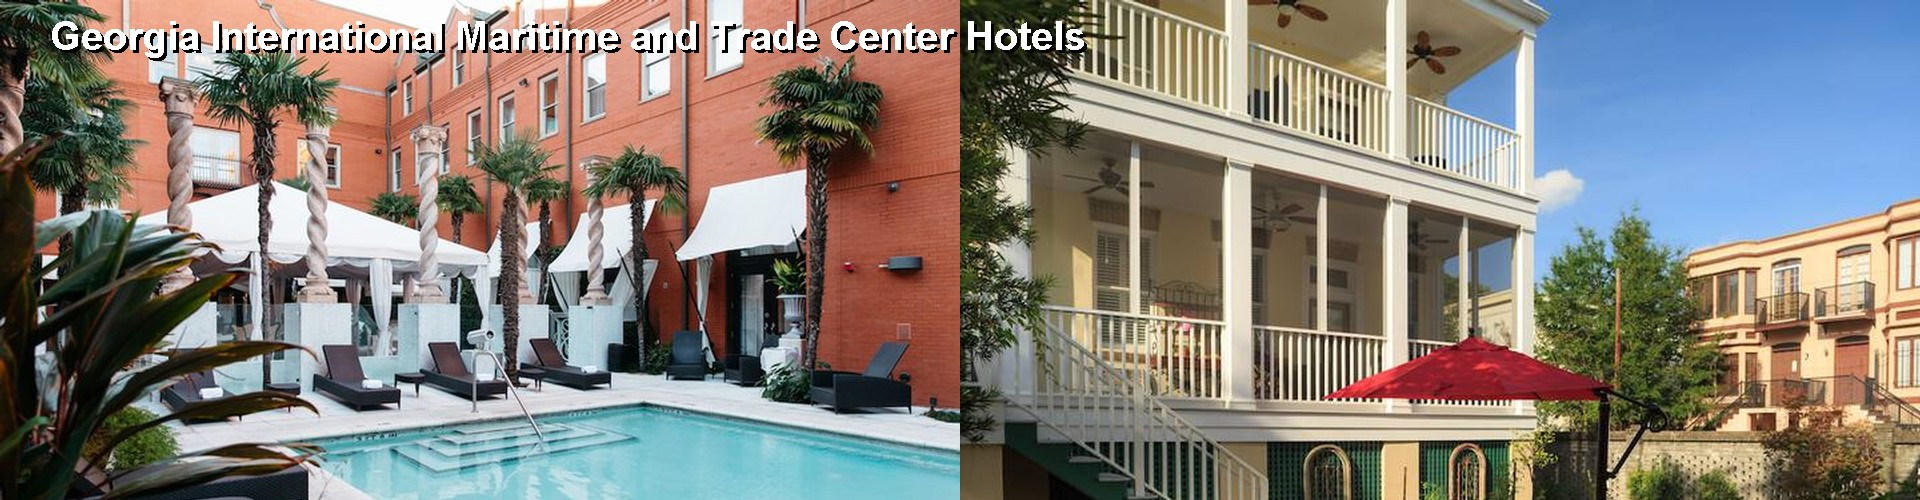 5 Best Hotels near Georgia International Maritime and Trade Center